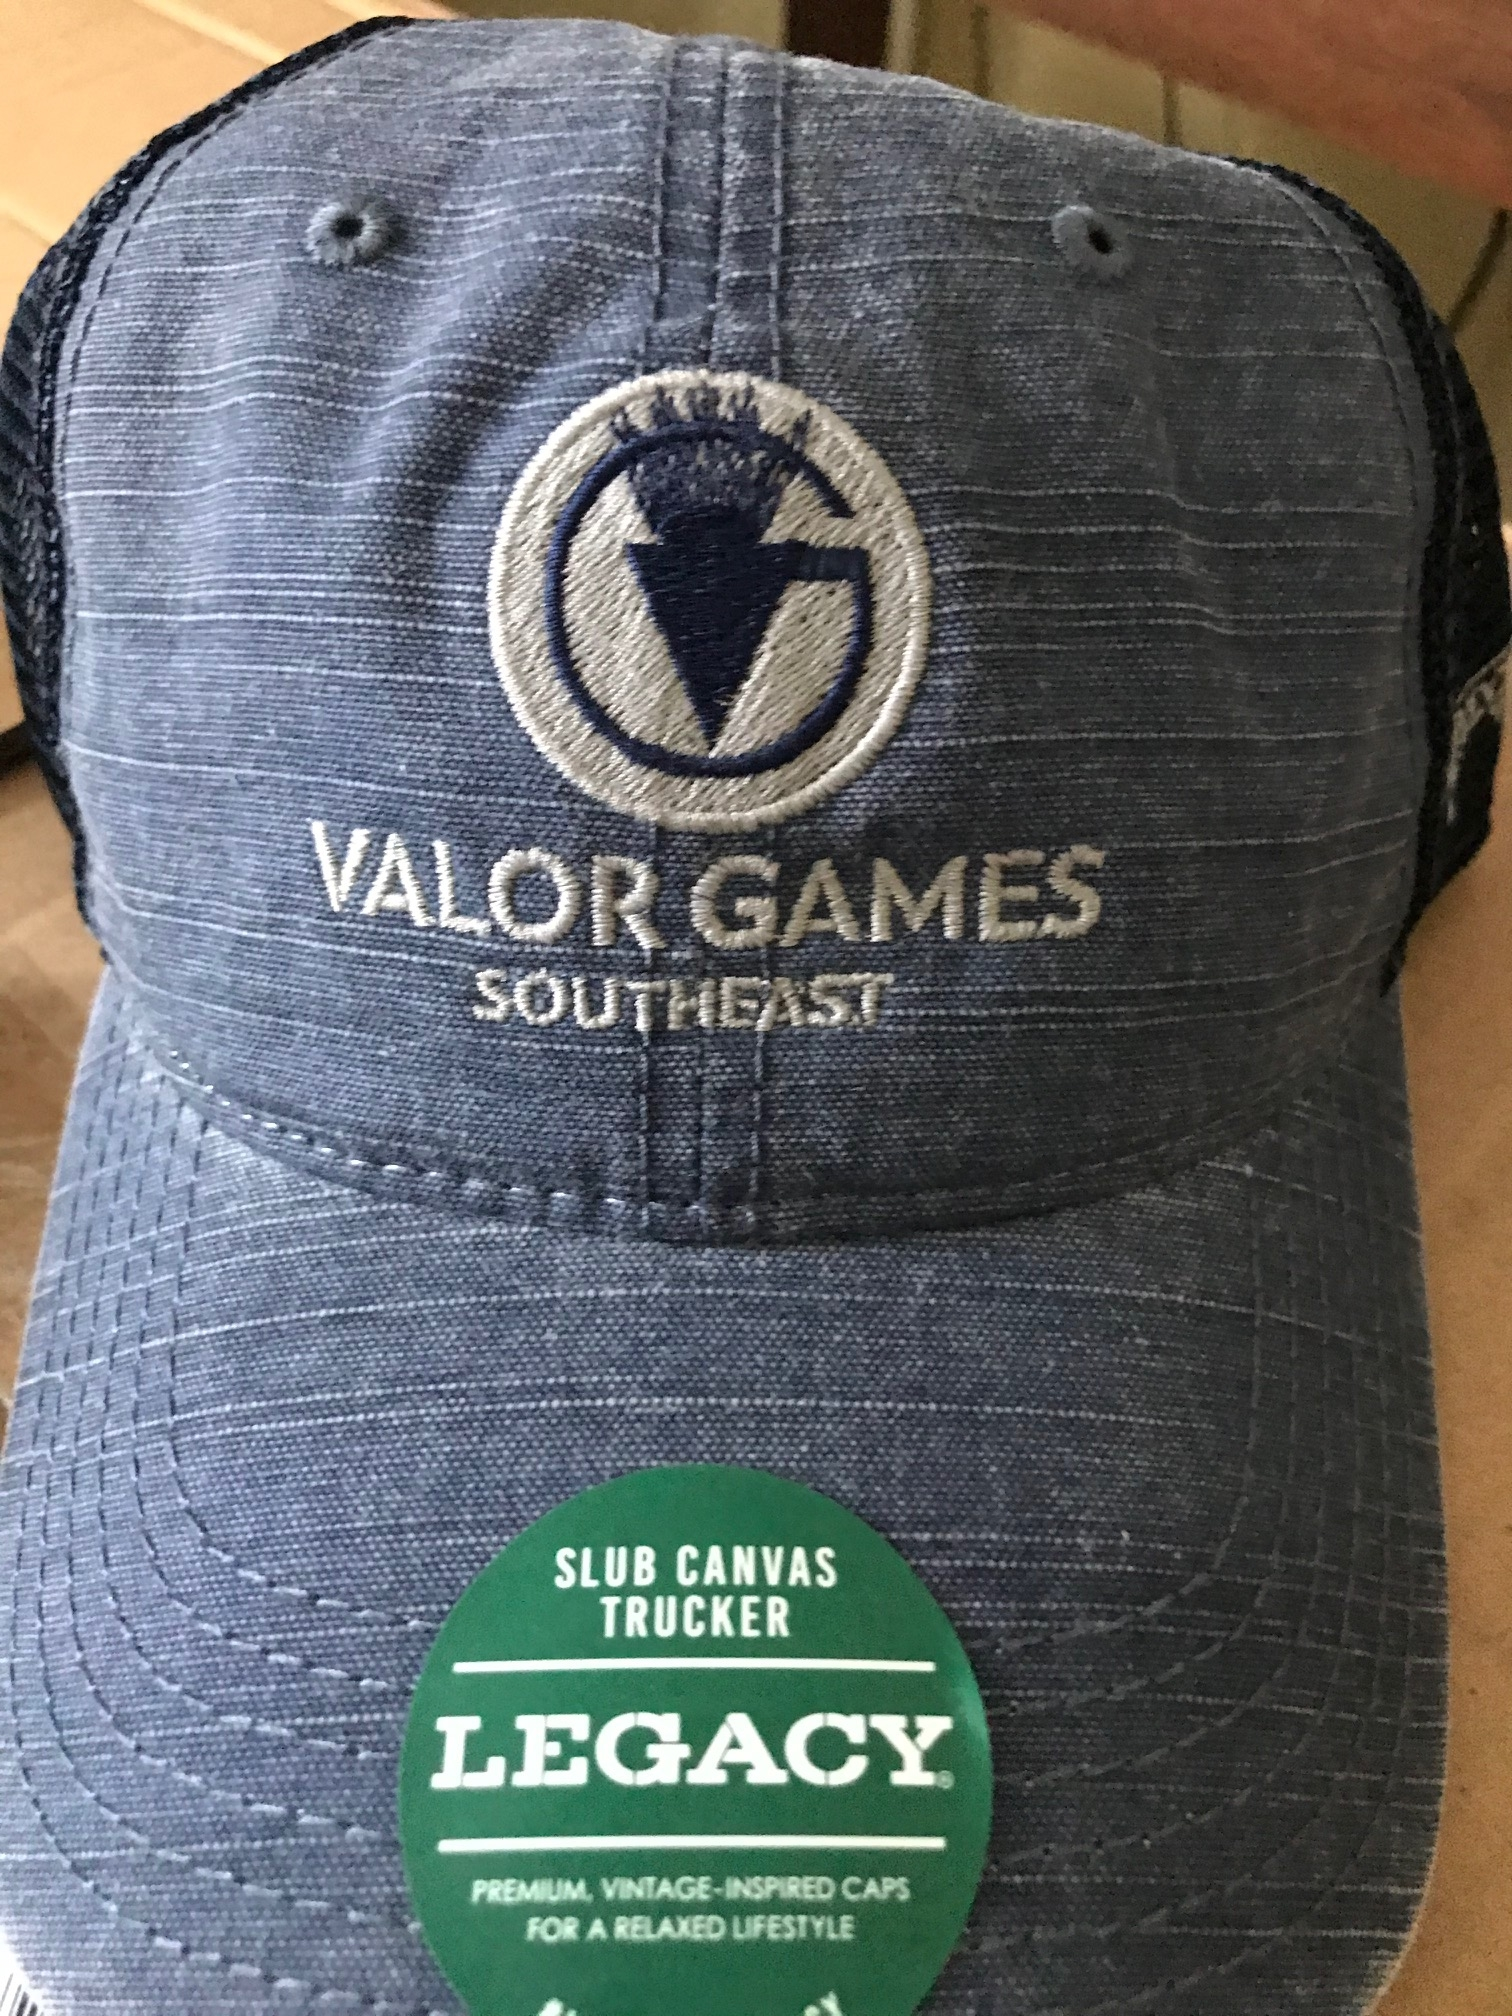 blue baseball style cap with silver stiching of Valor Games Southeast text and logo